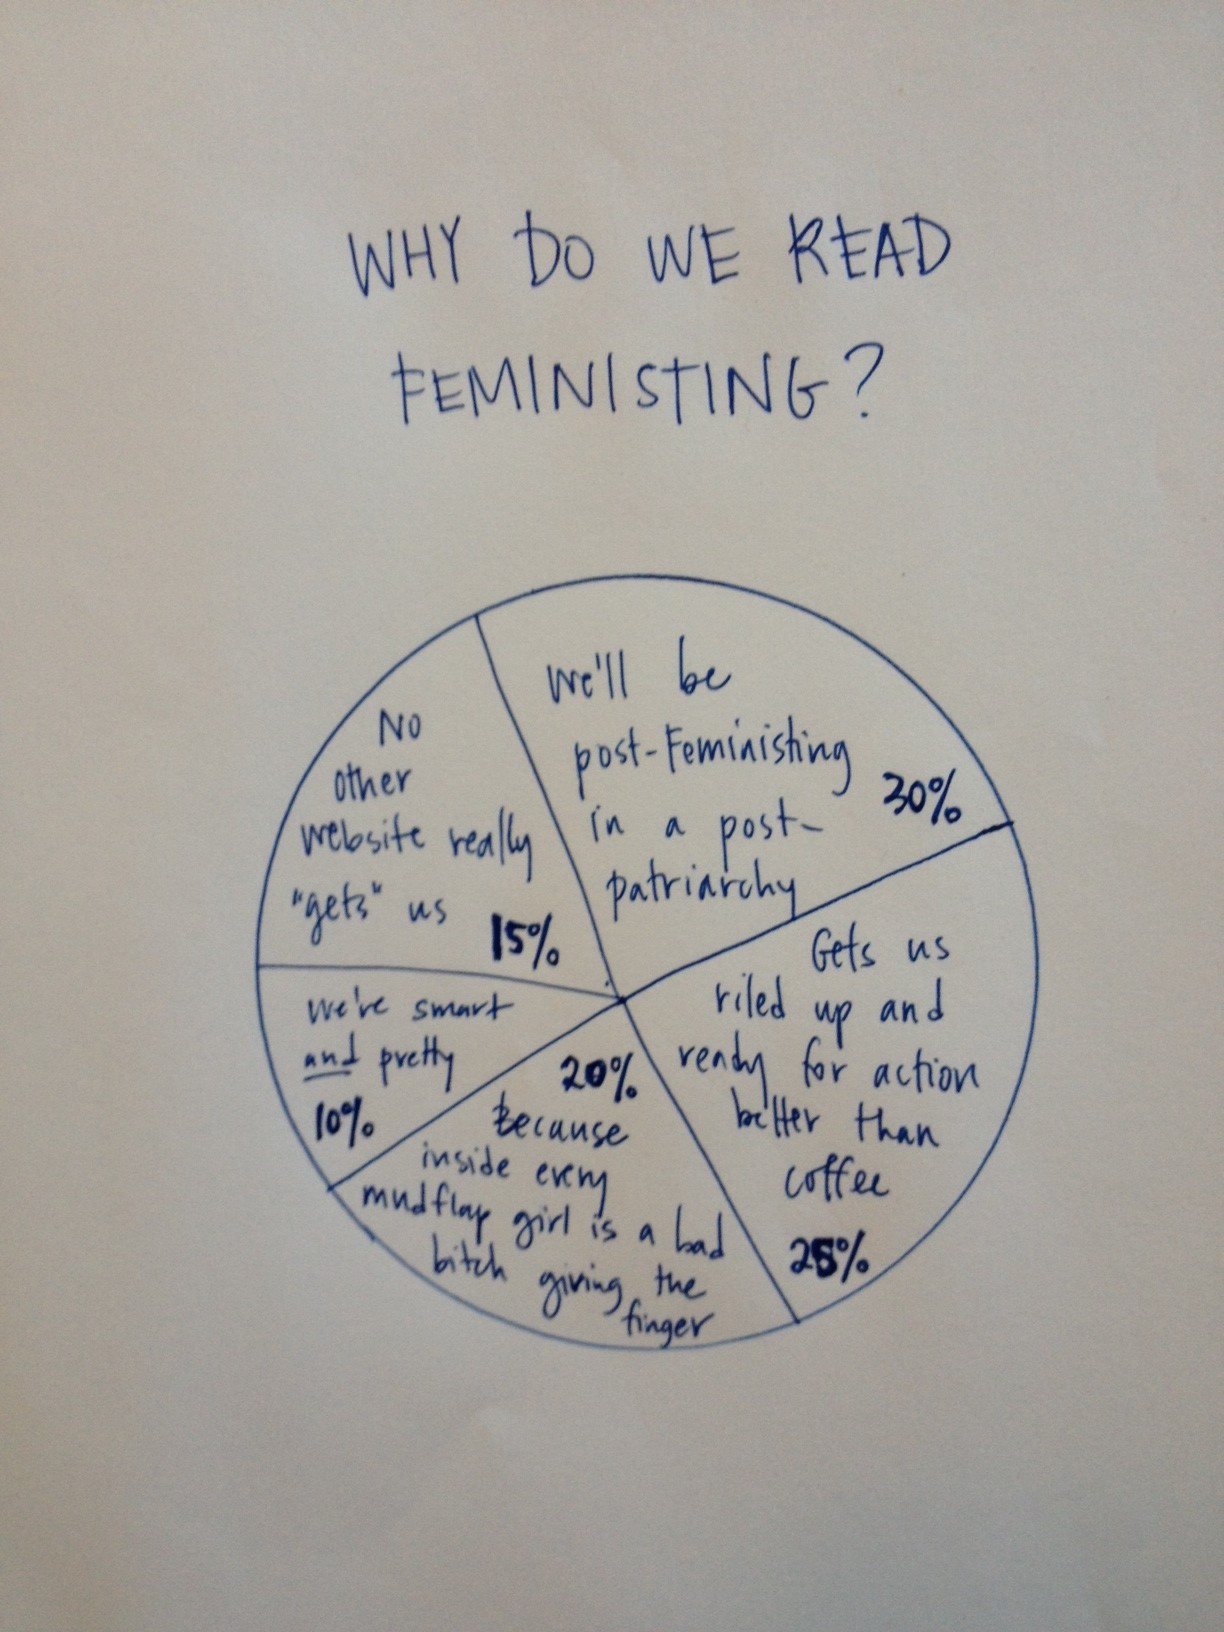 Why do we read Feminsiting?